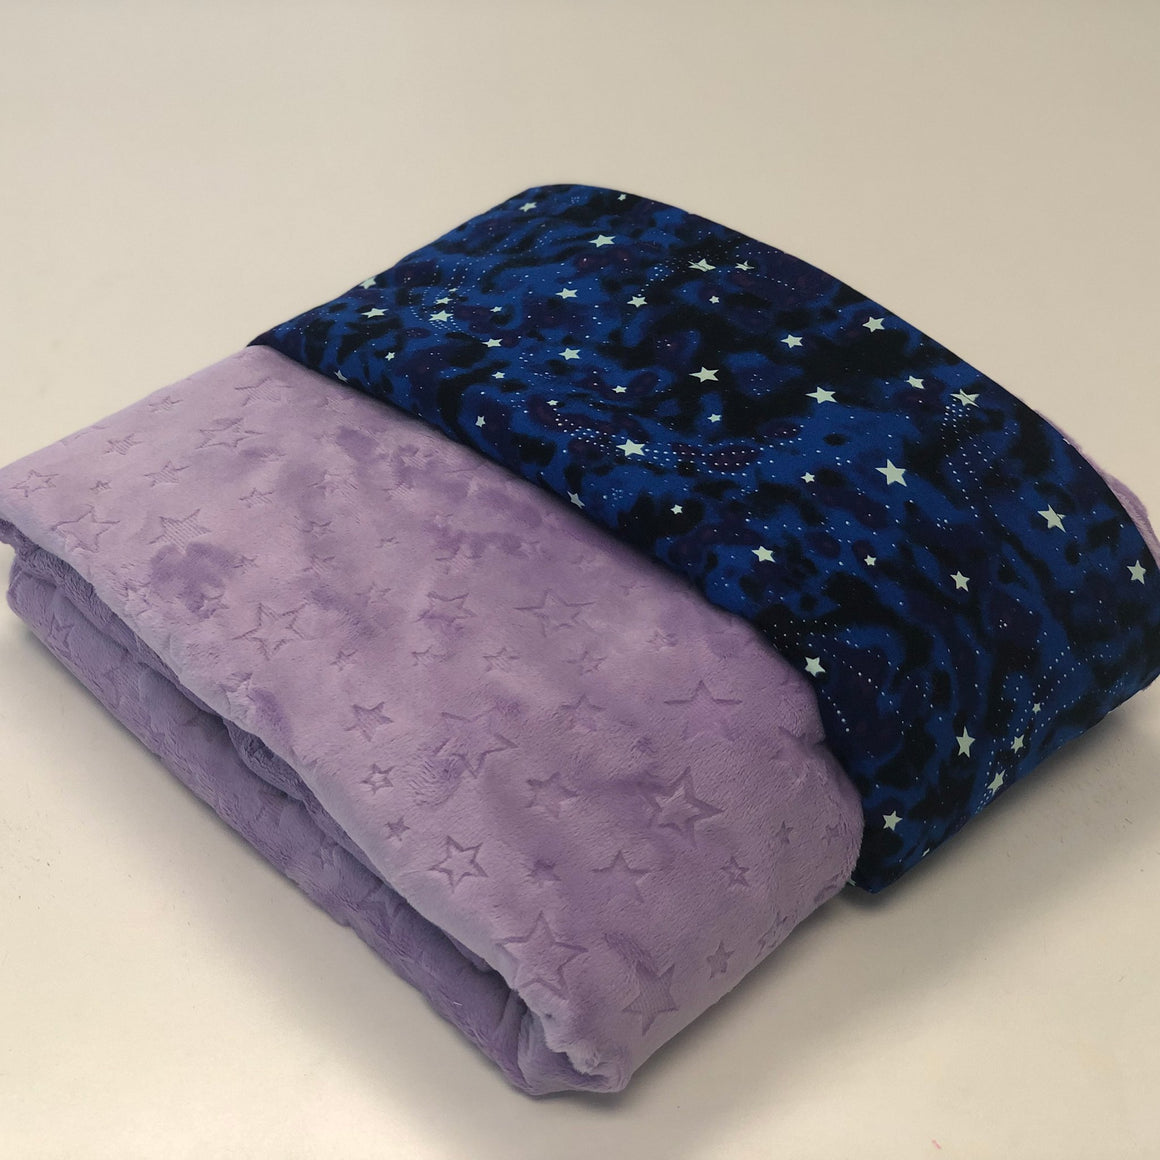 Komfy Couture Weighted Blankets Glow in the Dark Luxury Weighted Blanket with Lilac Star Minky - Glass beads - Adult, Teen, Child